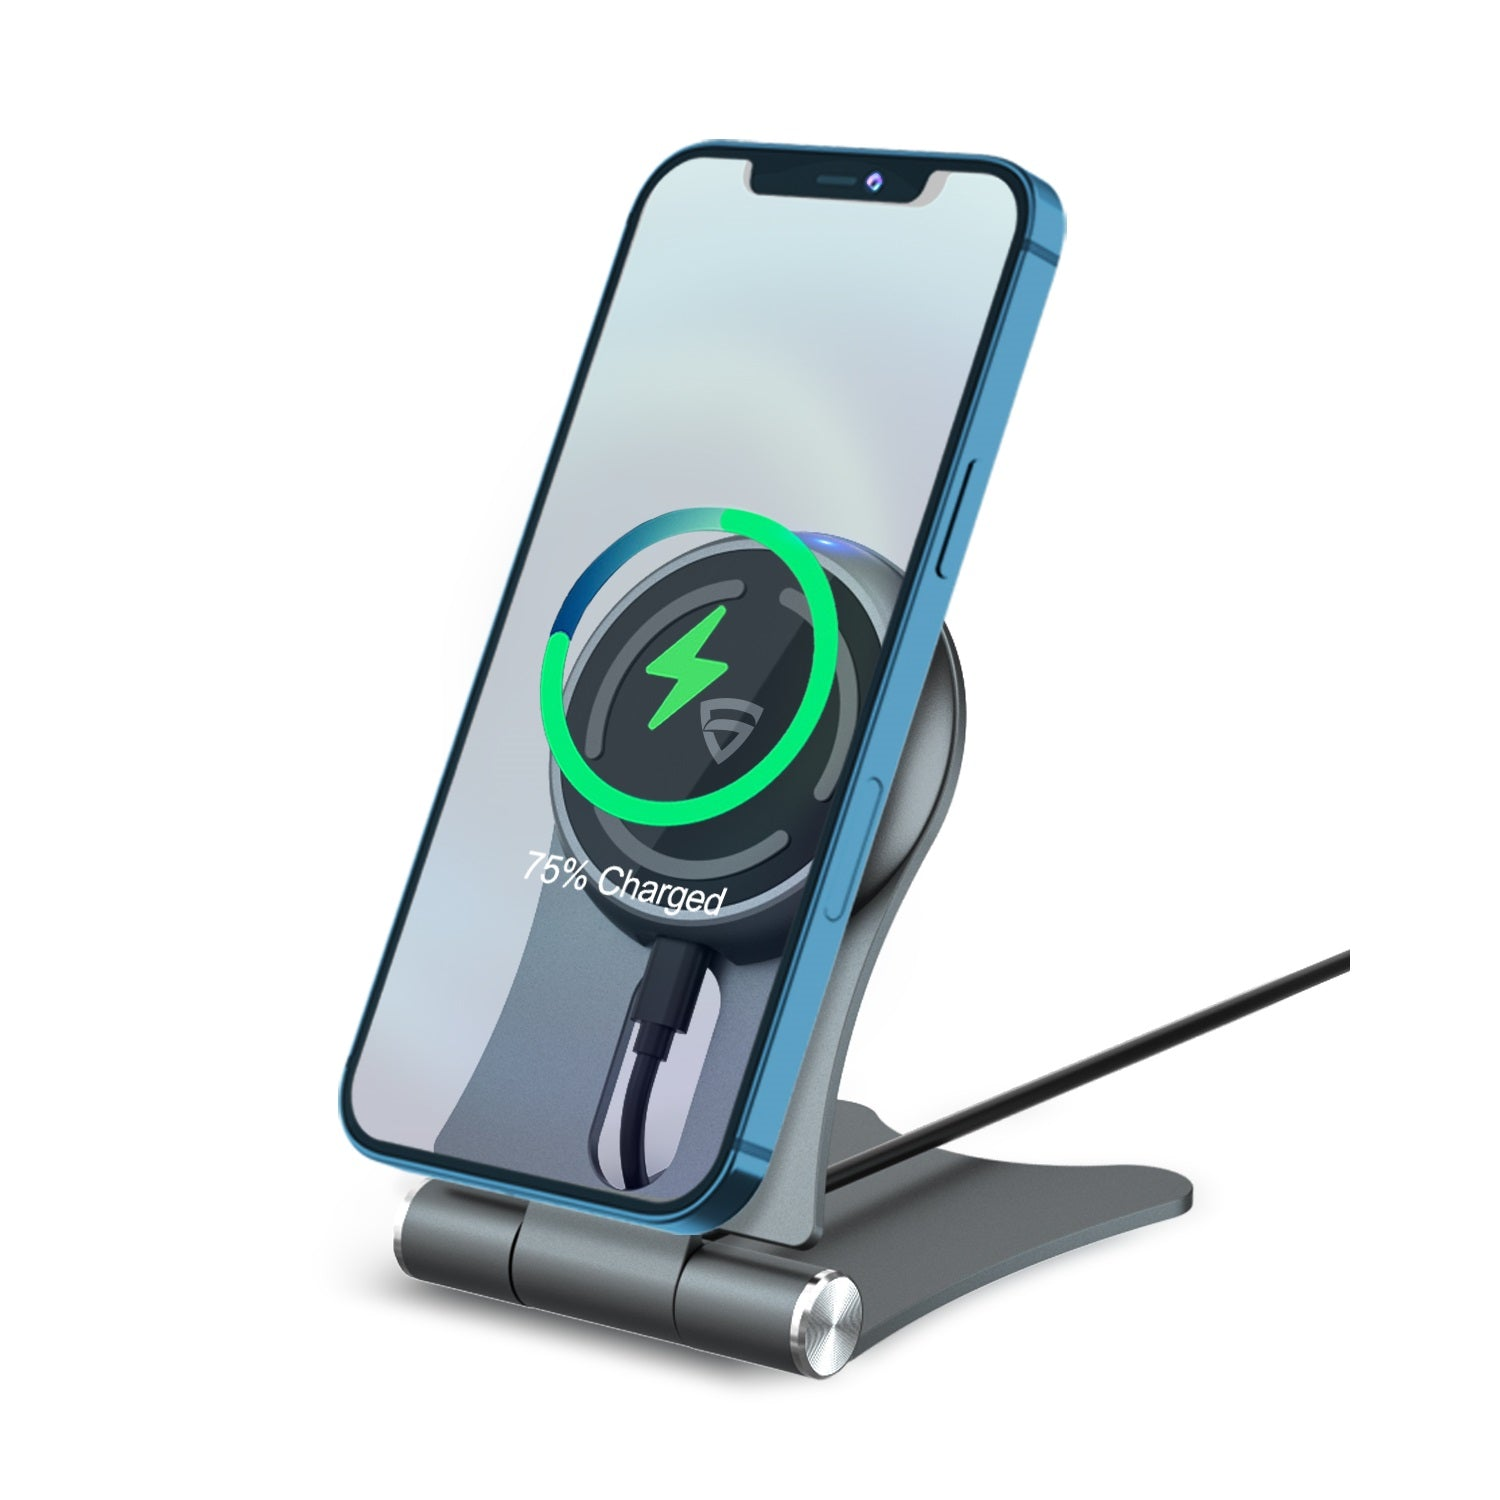 RAEGR MagFix Arc M1320 Foldable Wireless Charging Stand